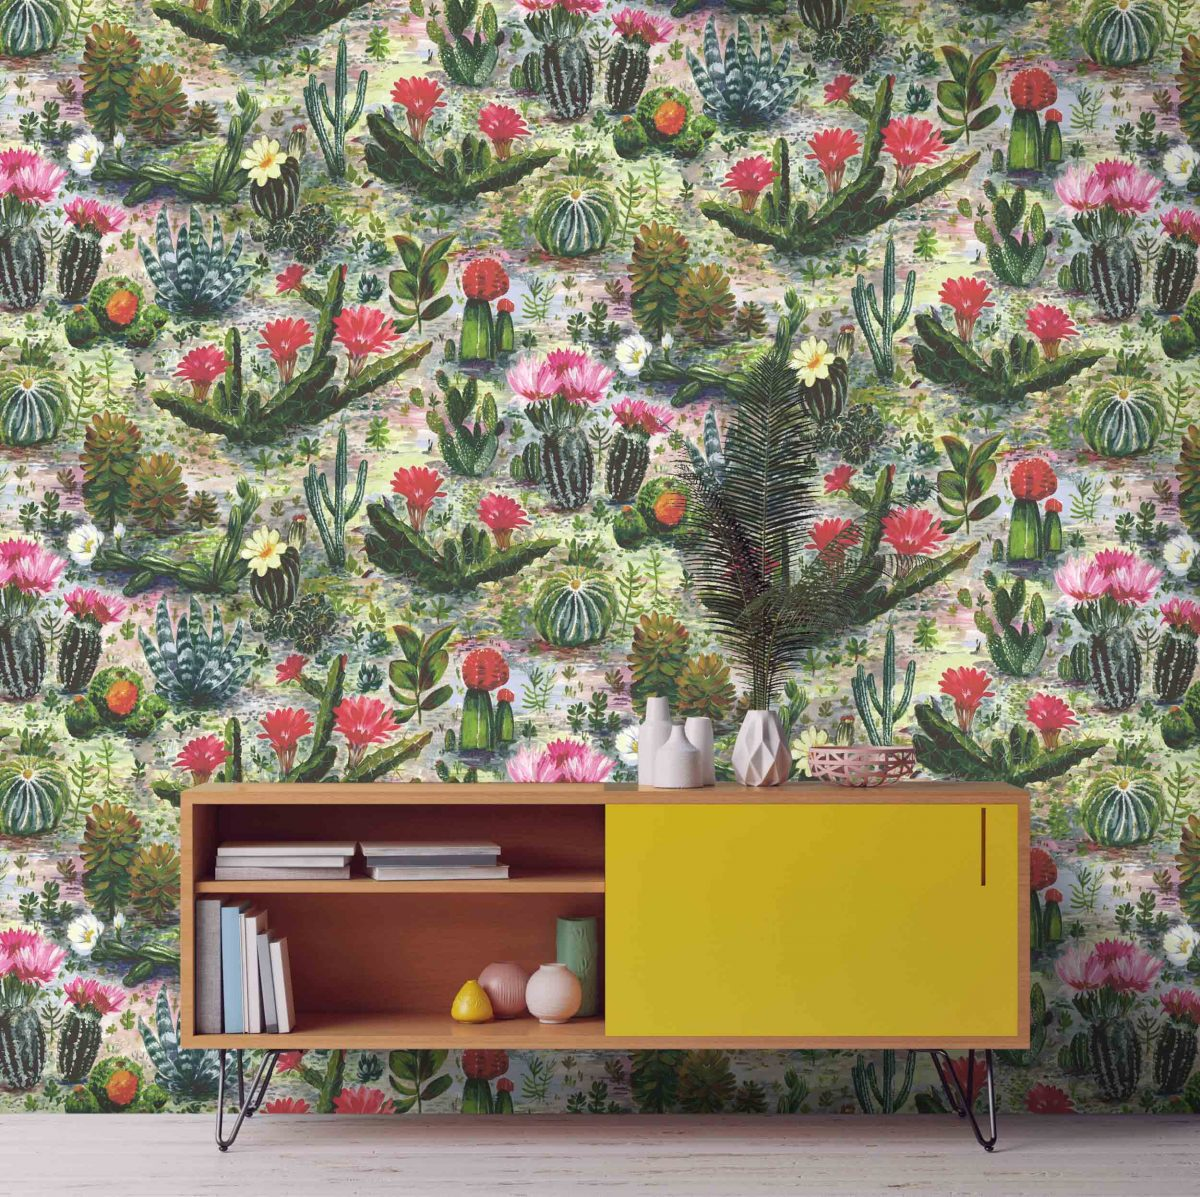 24woodchip-and-magnolia_cacti-multi-wallpaper-1200x1200.jpg